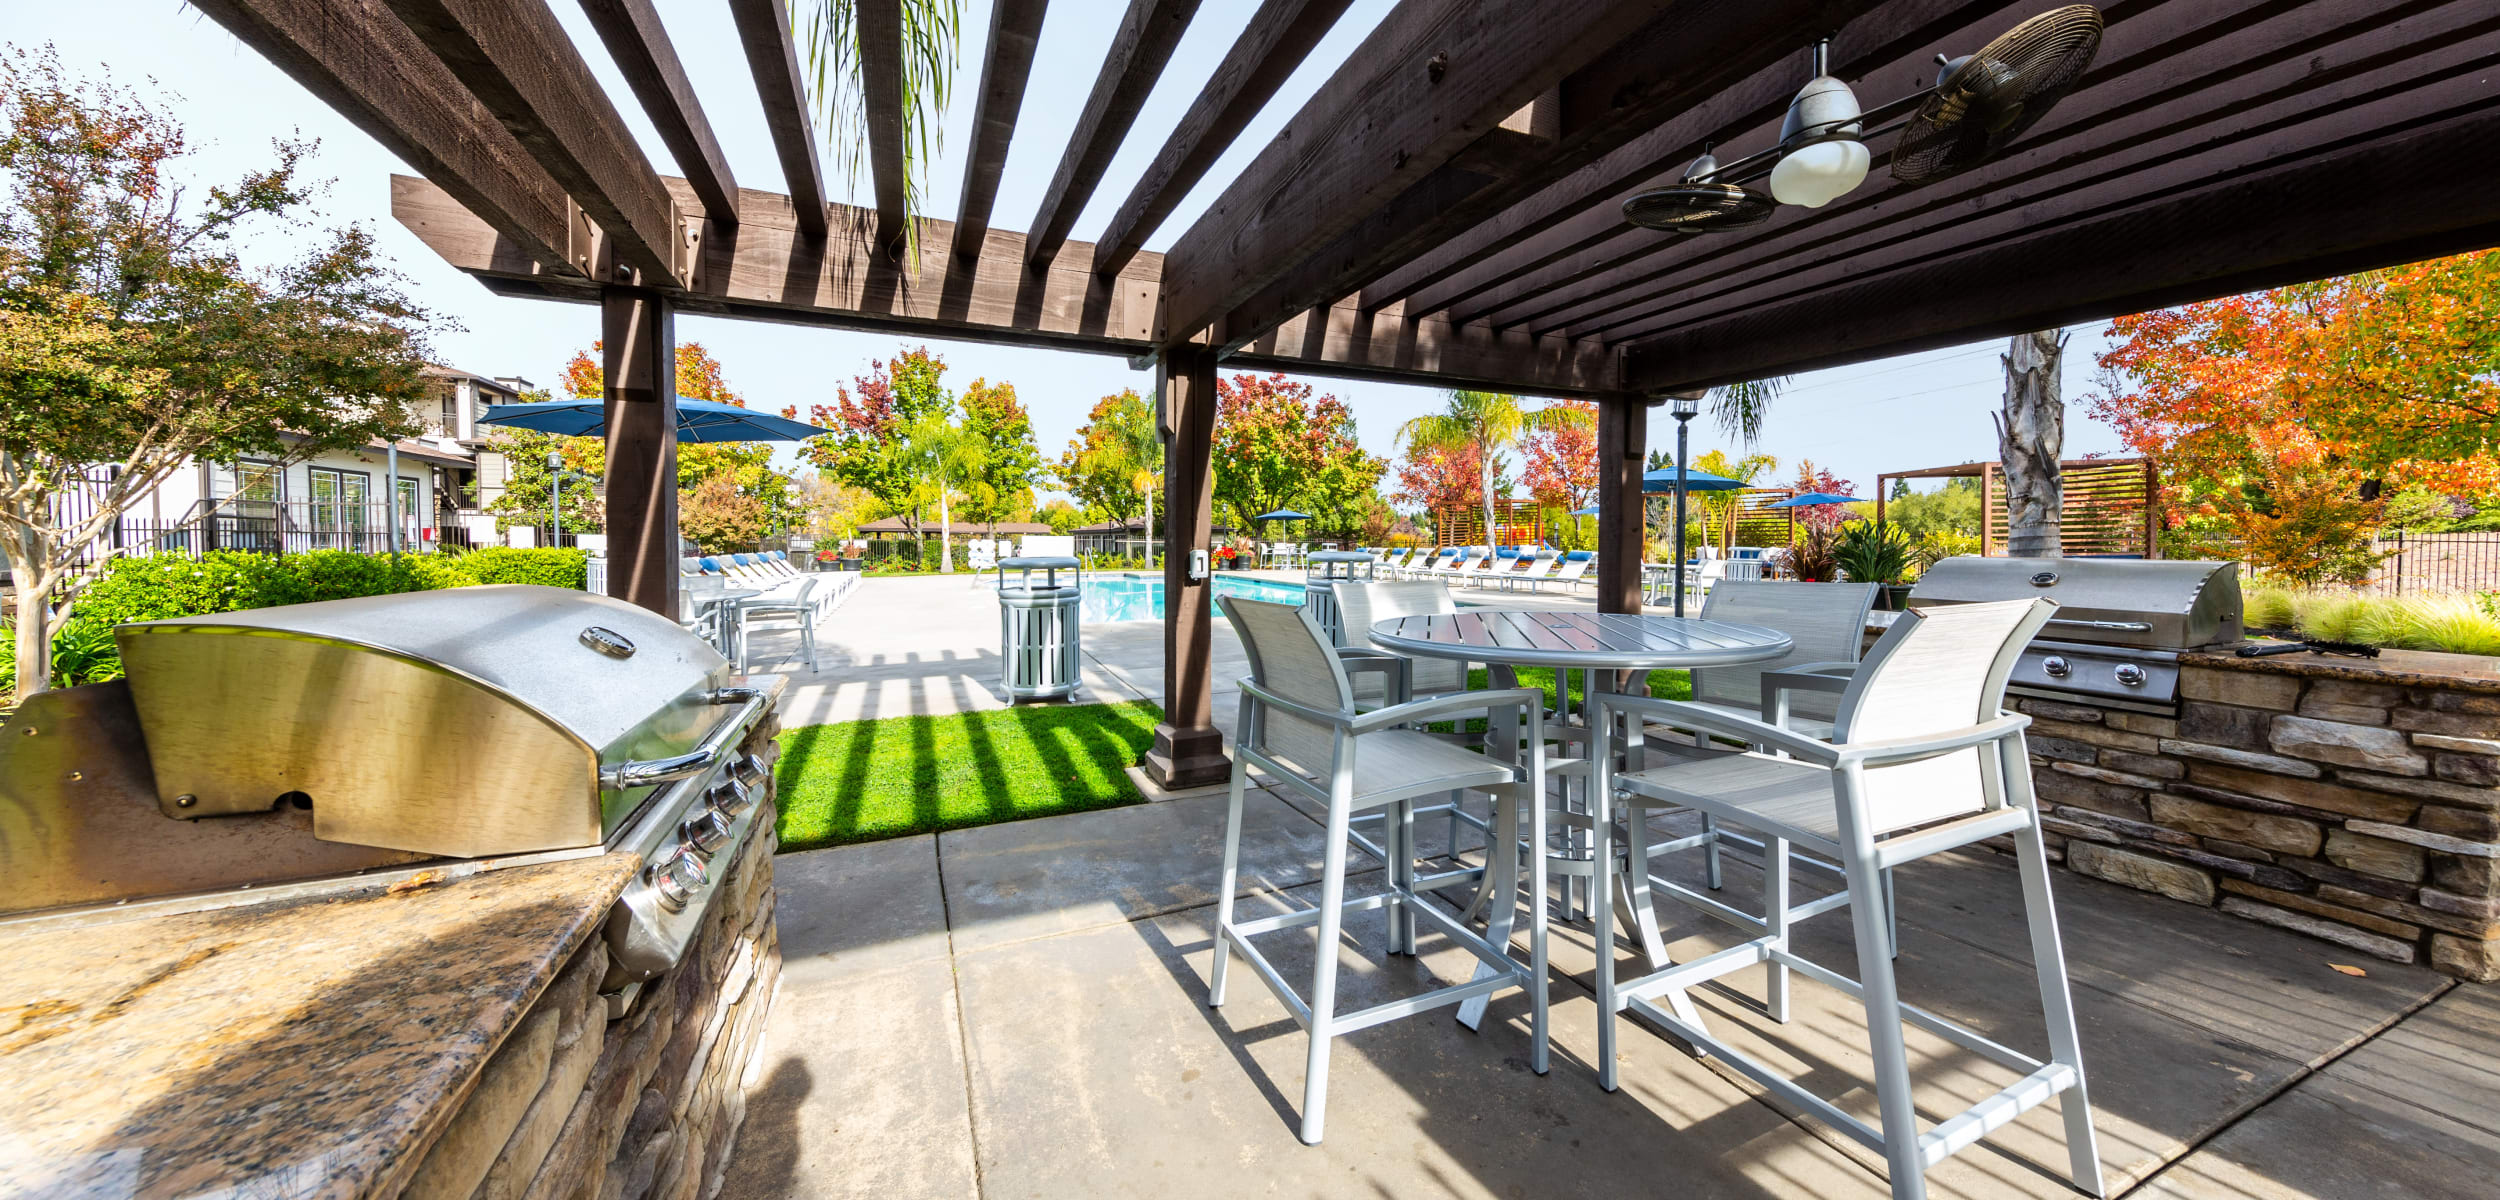 Outdoor covered poolside BBQ and dining area at The Fairmont at Willow Creek in Folsom, California